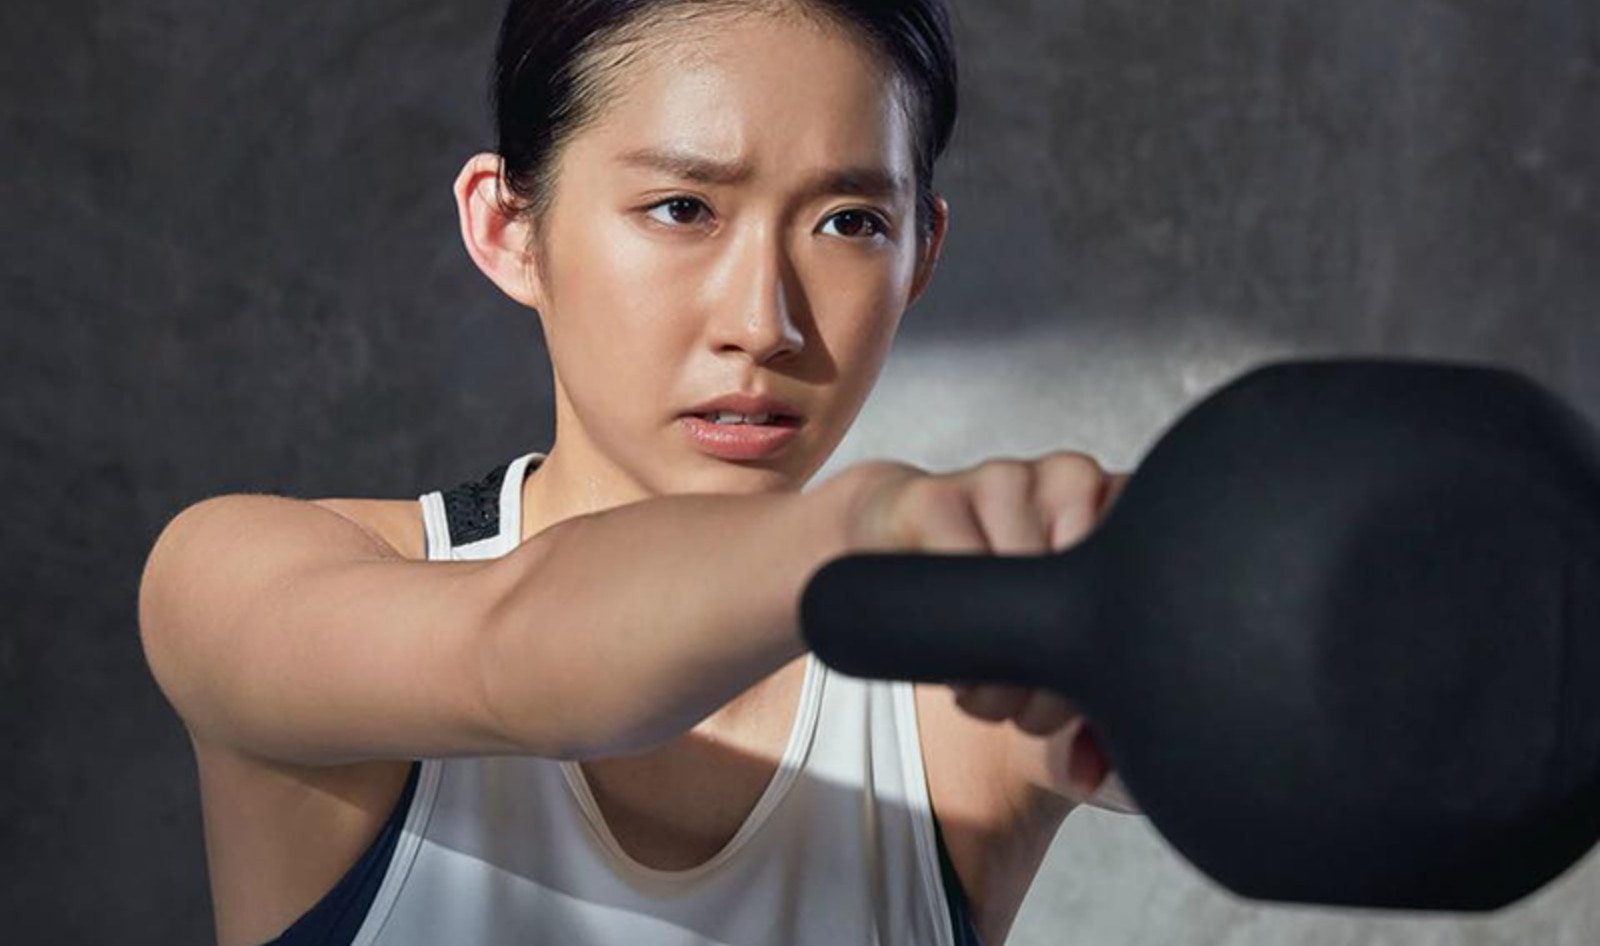 Vegan Athlete Wins Gold at Asian Fencing Championships